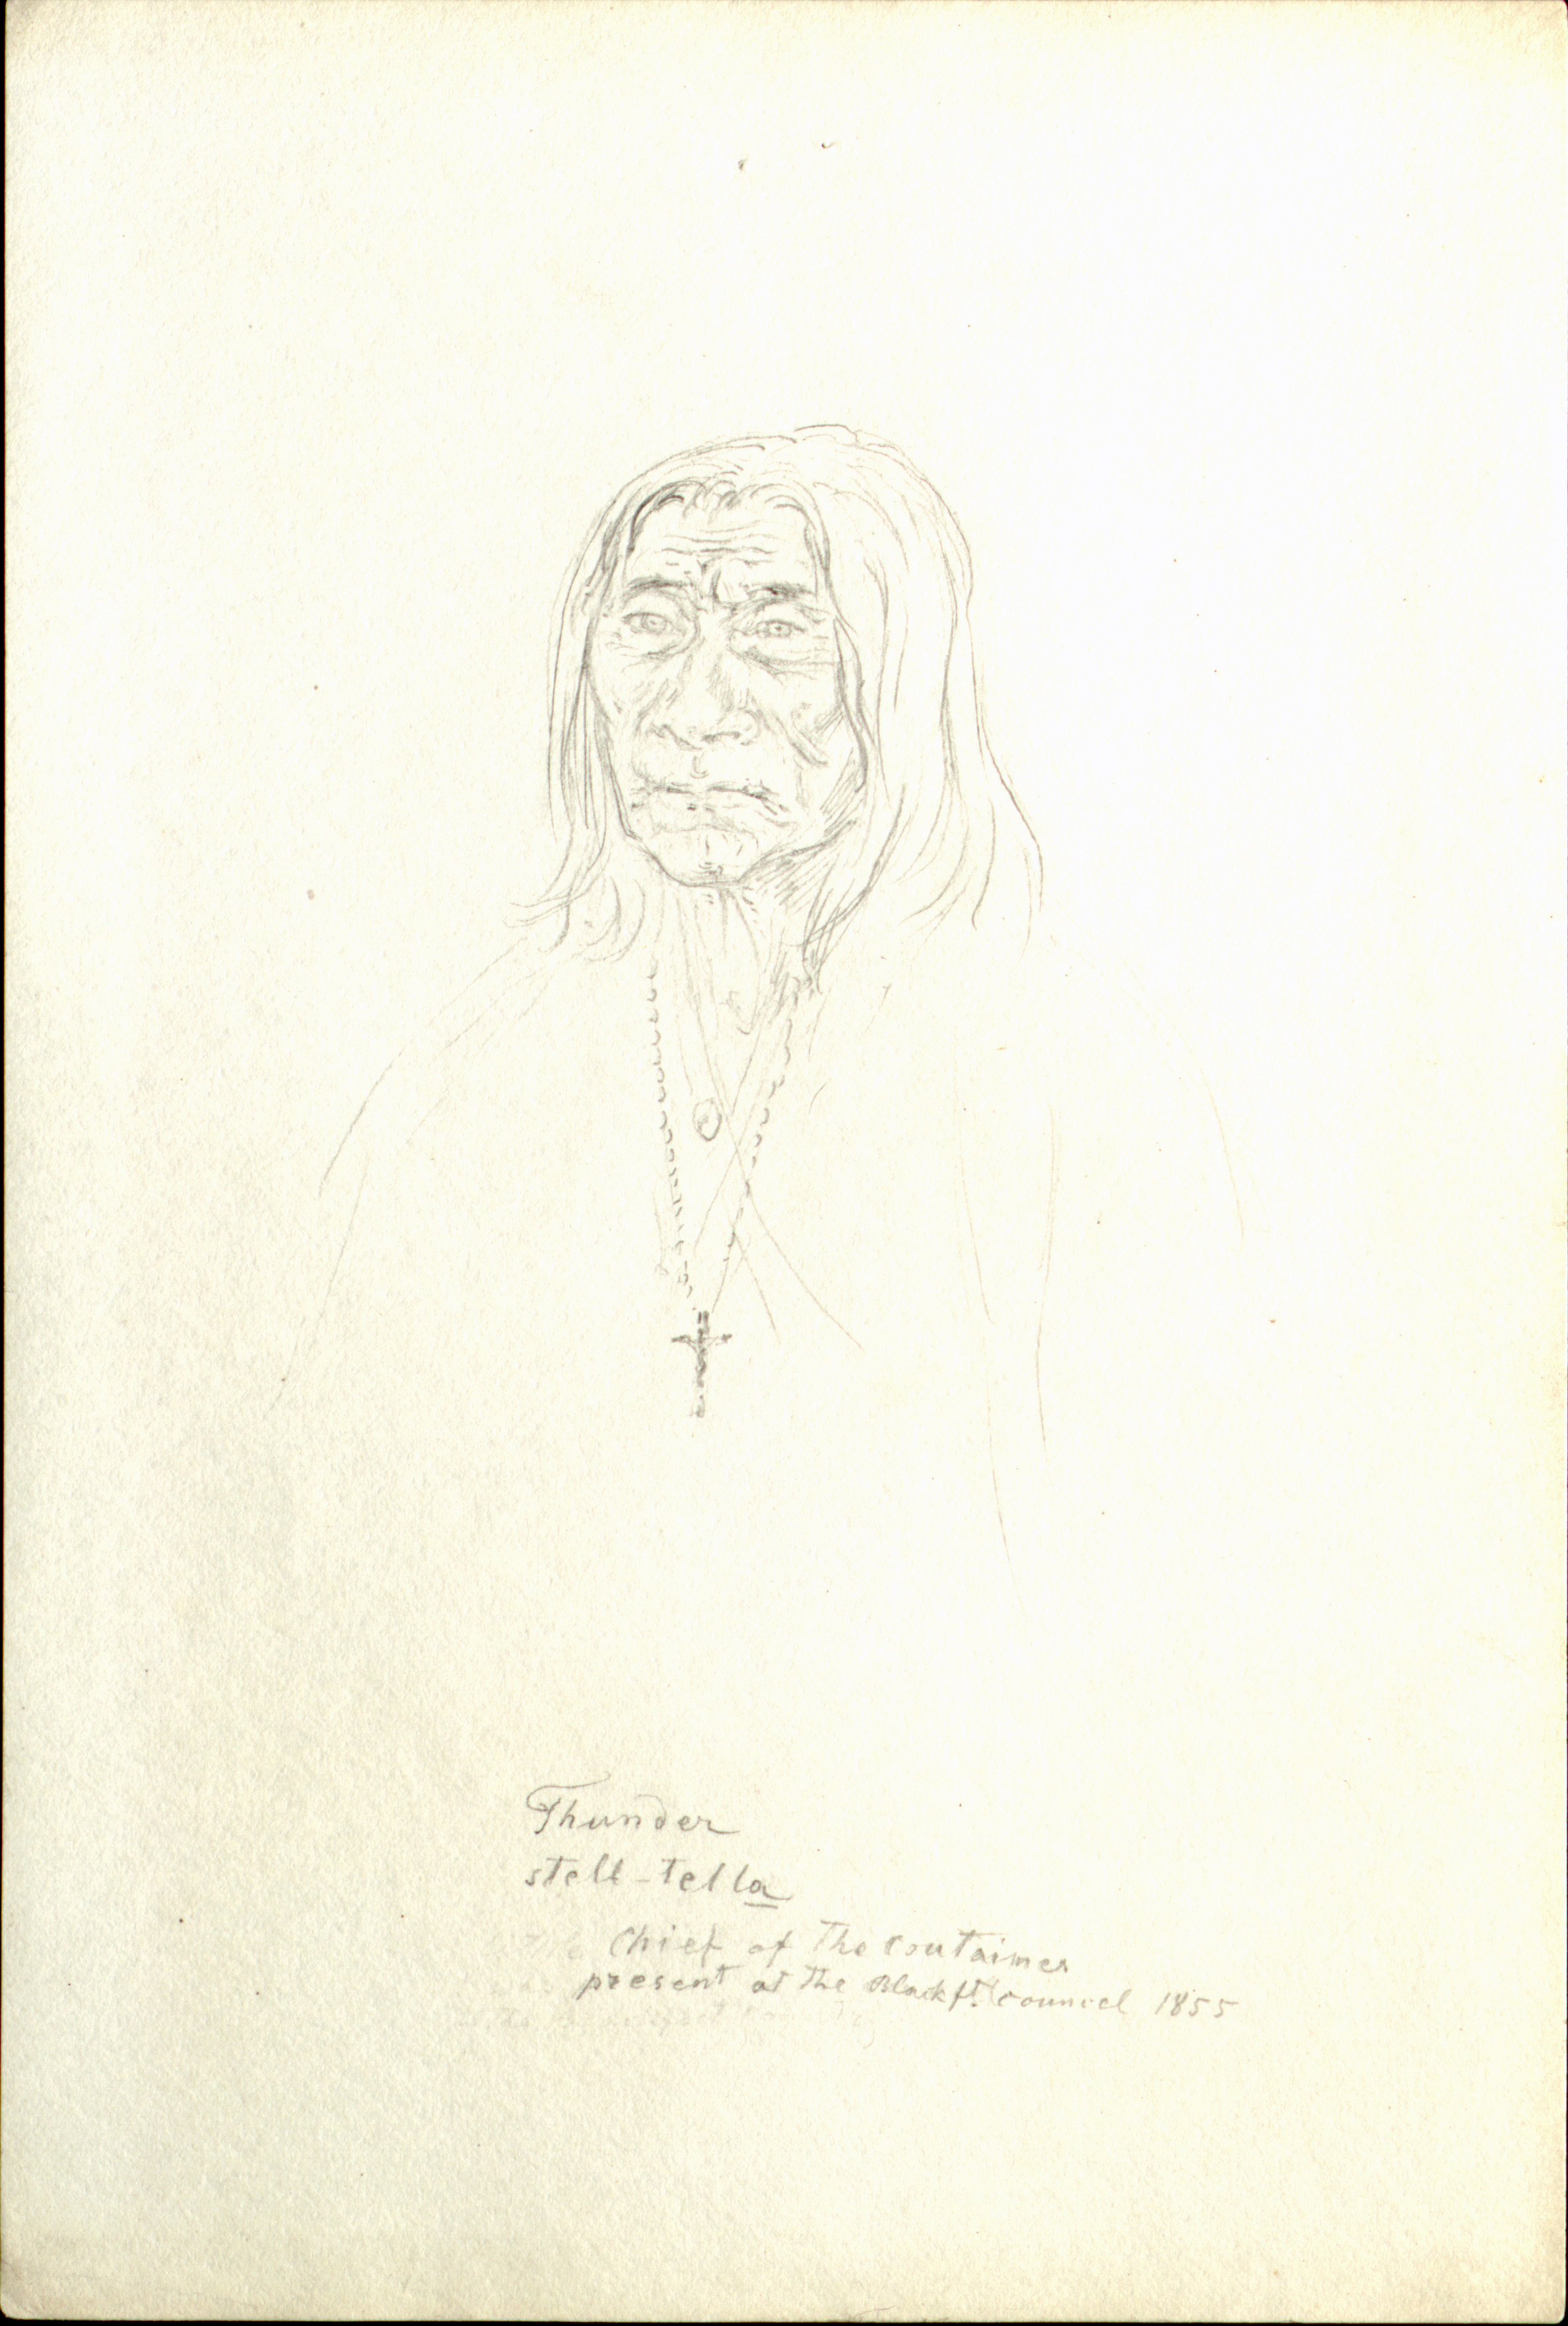 Thunder  Stell-tella  Chief of the coutaines present at the Blackft. Council 1855